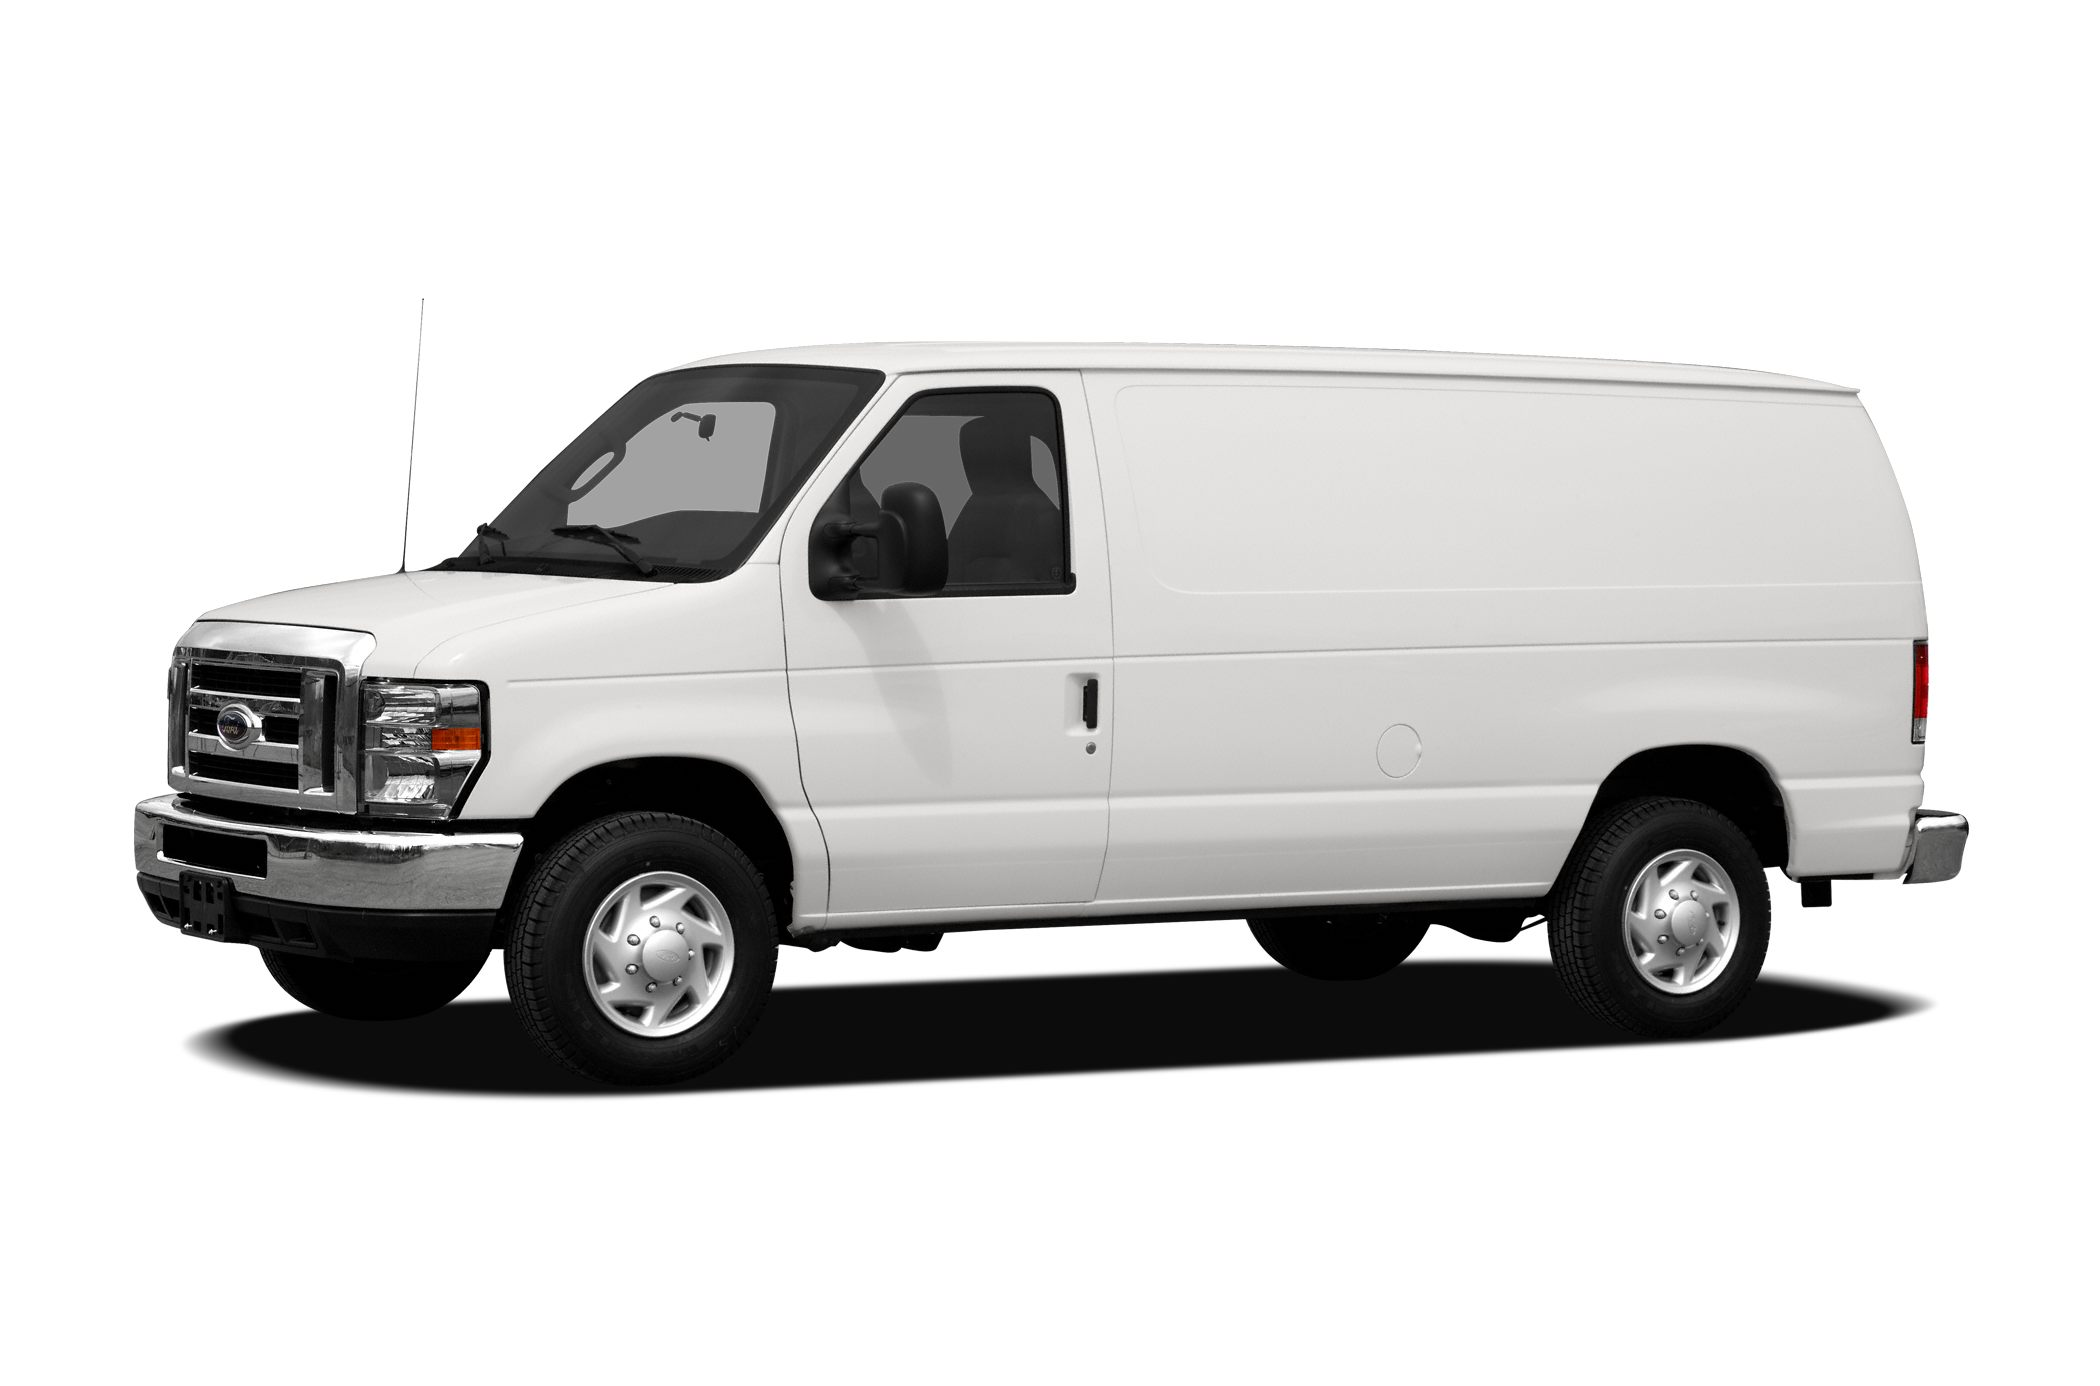 defff7dbacf15b 2012 Ford E-150 Pricing and Specs